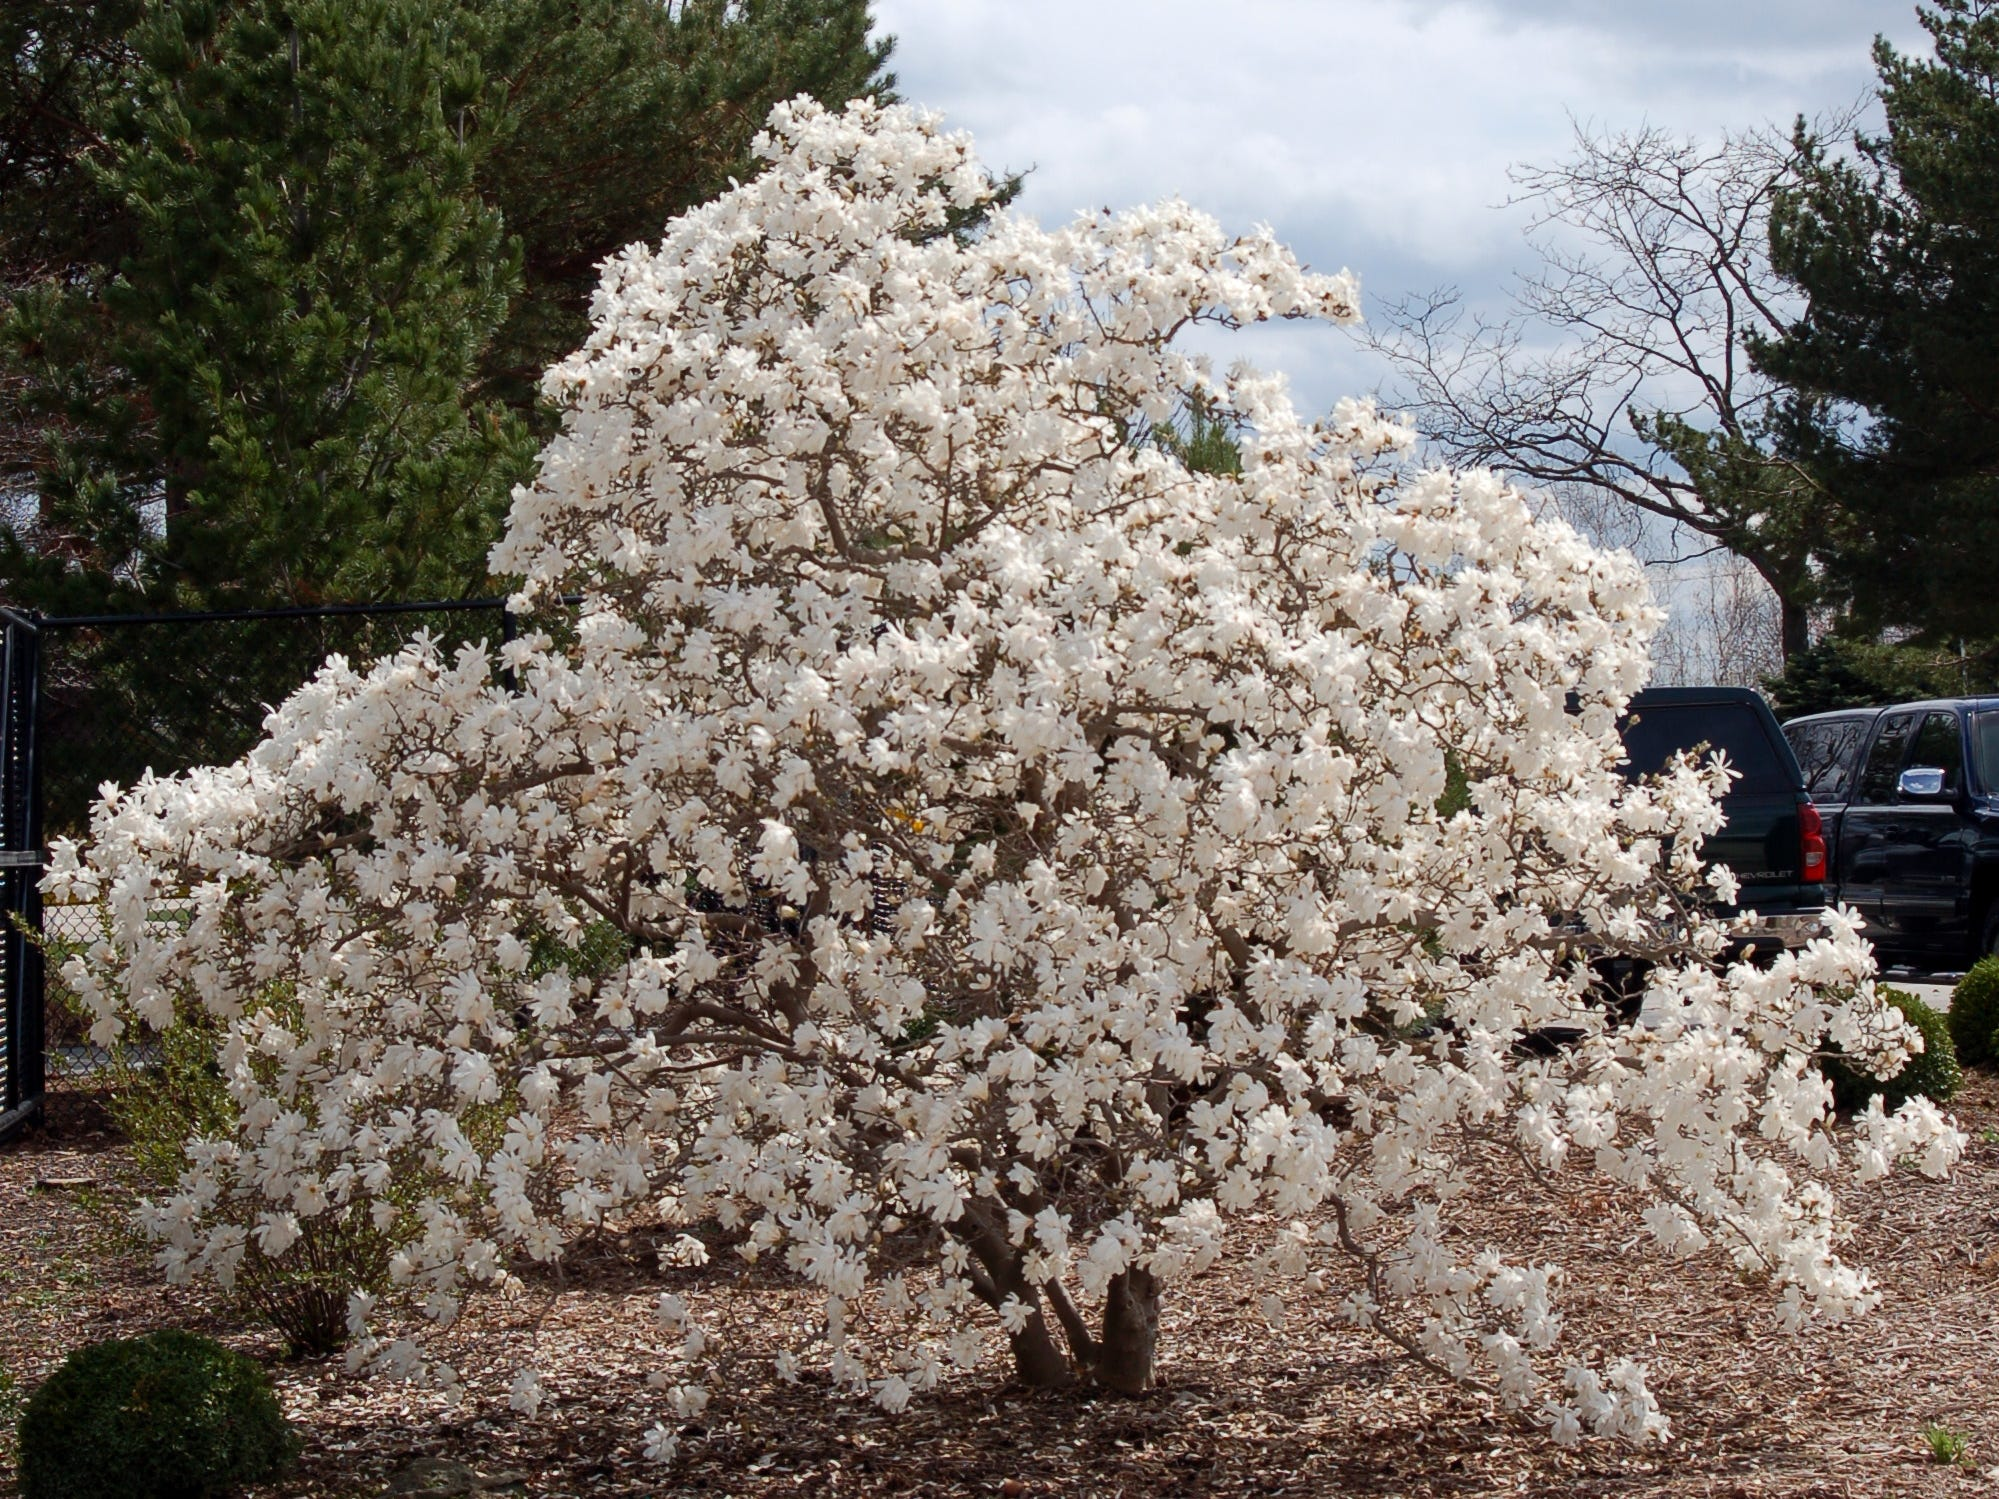 The Star magnolia produces star-shaped fragrant white flowers  in early spring.